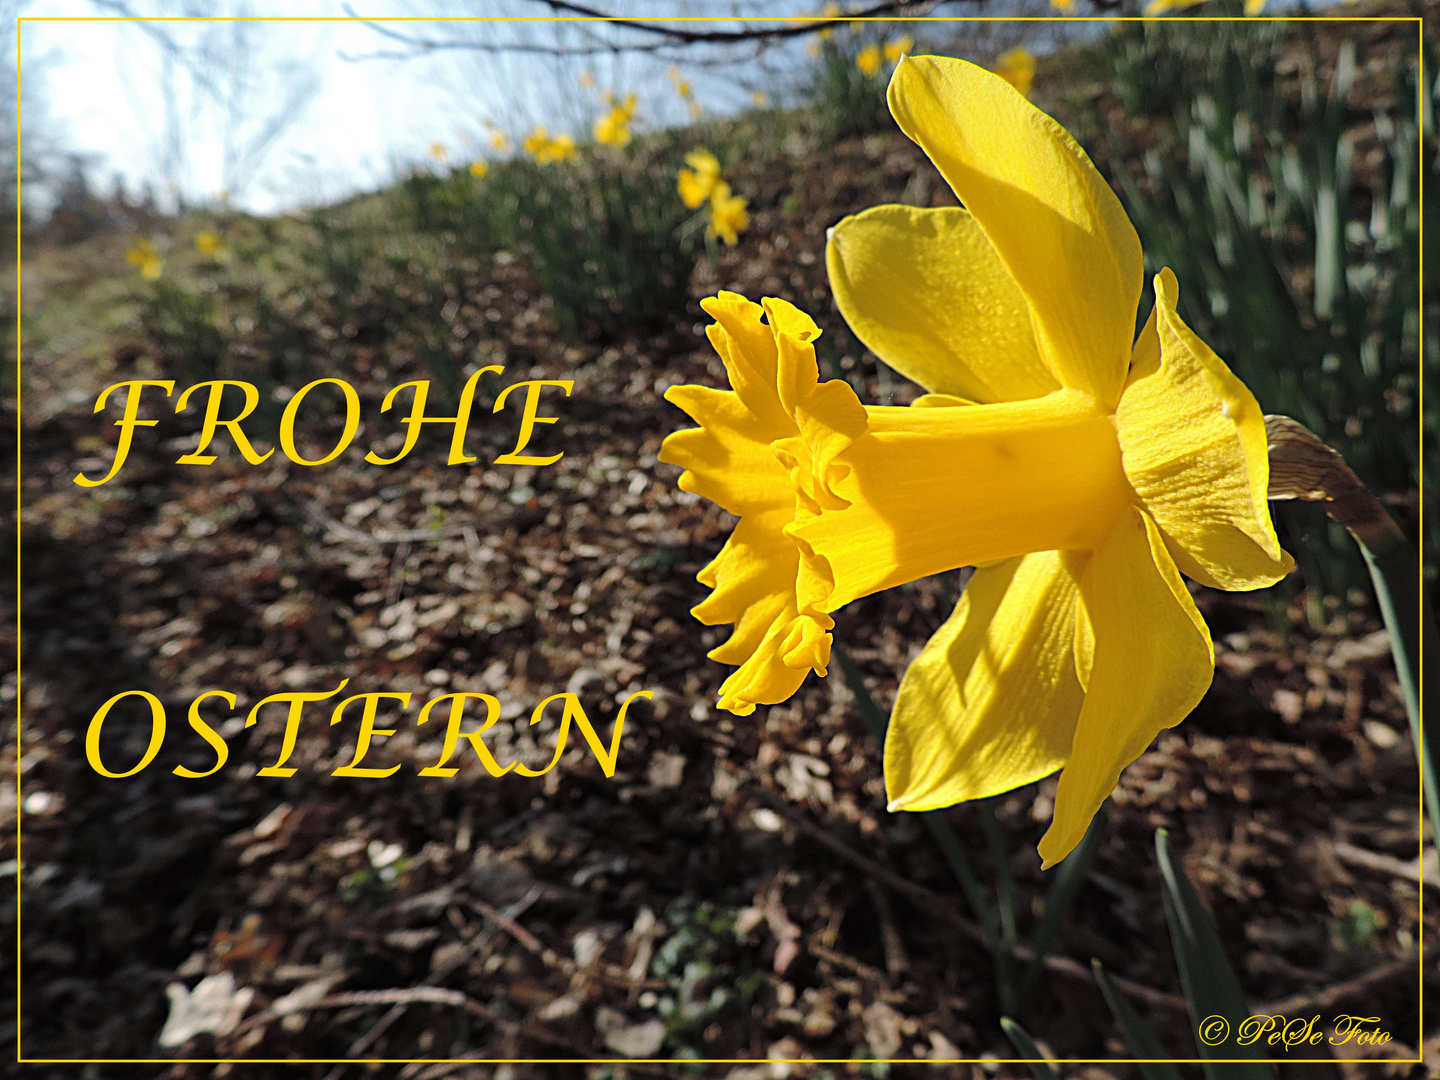 >>>Frohe Ostern